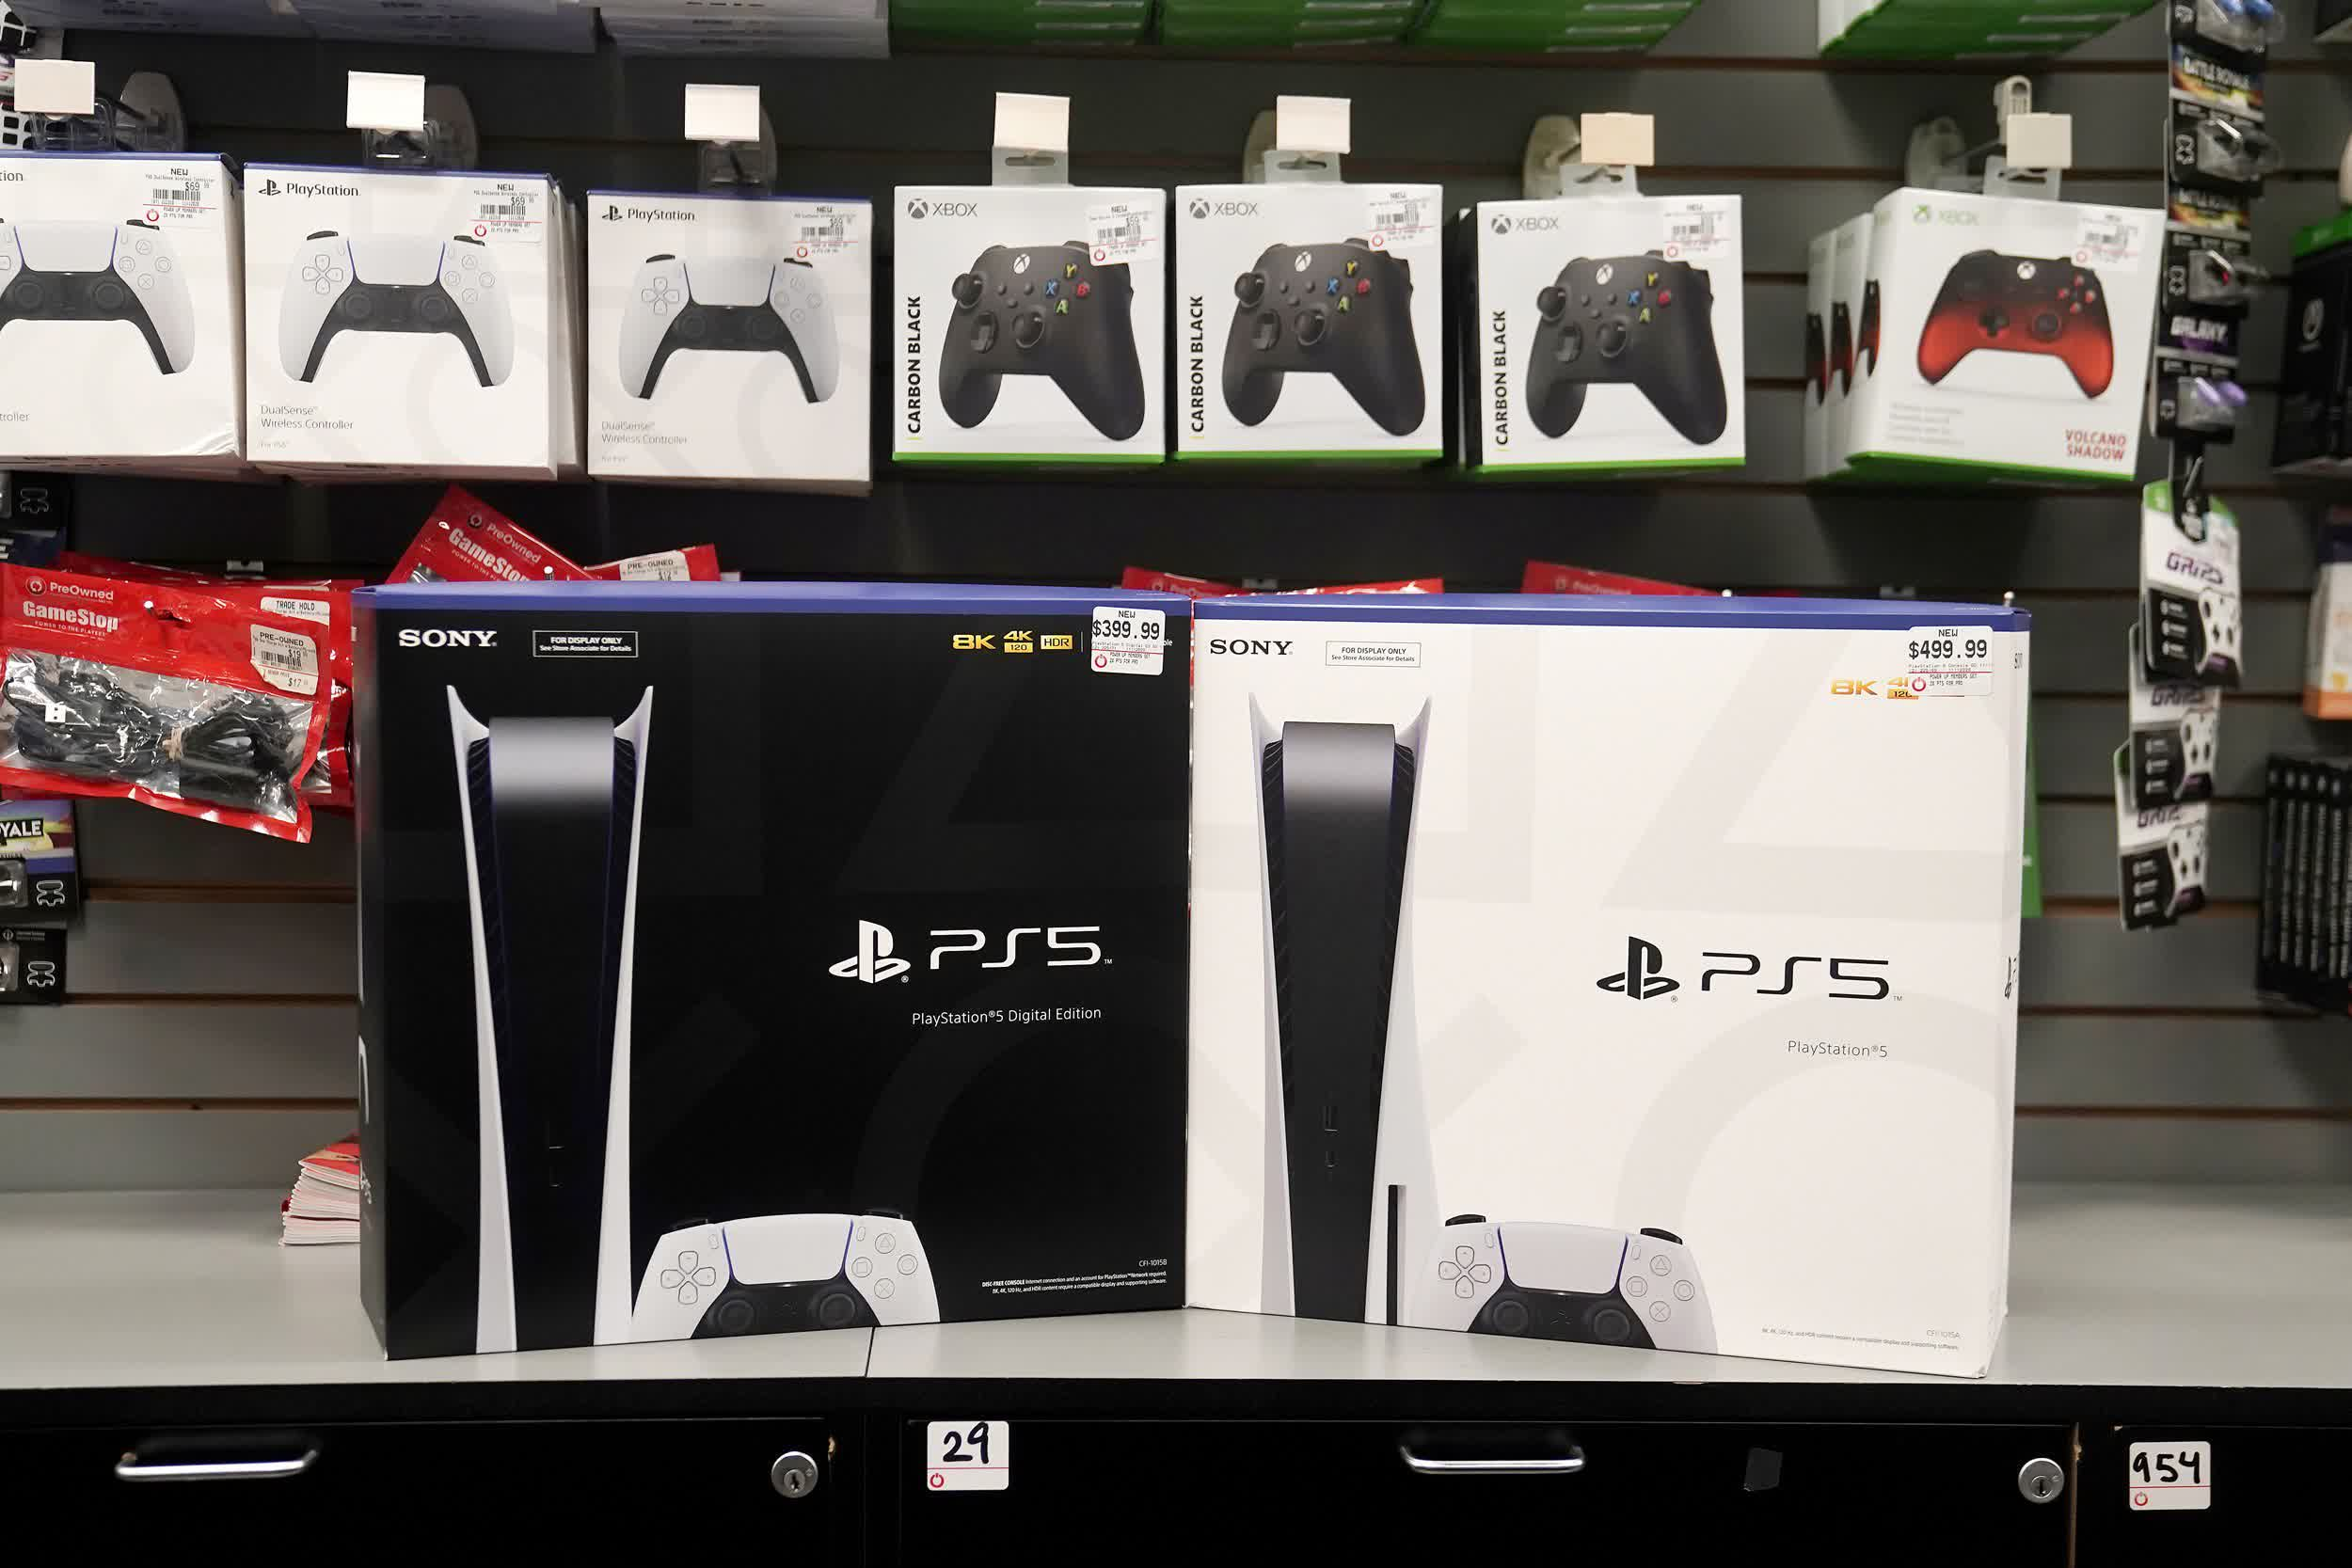 Members of Parliament to propose UK bill banning console and GPU scalping